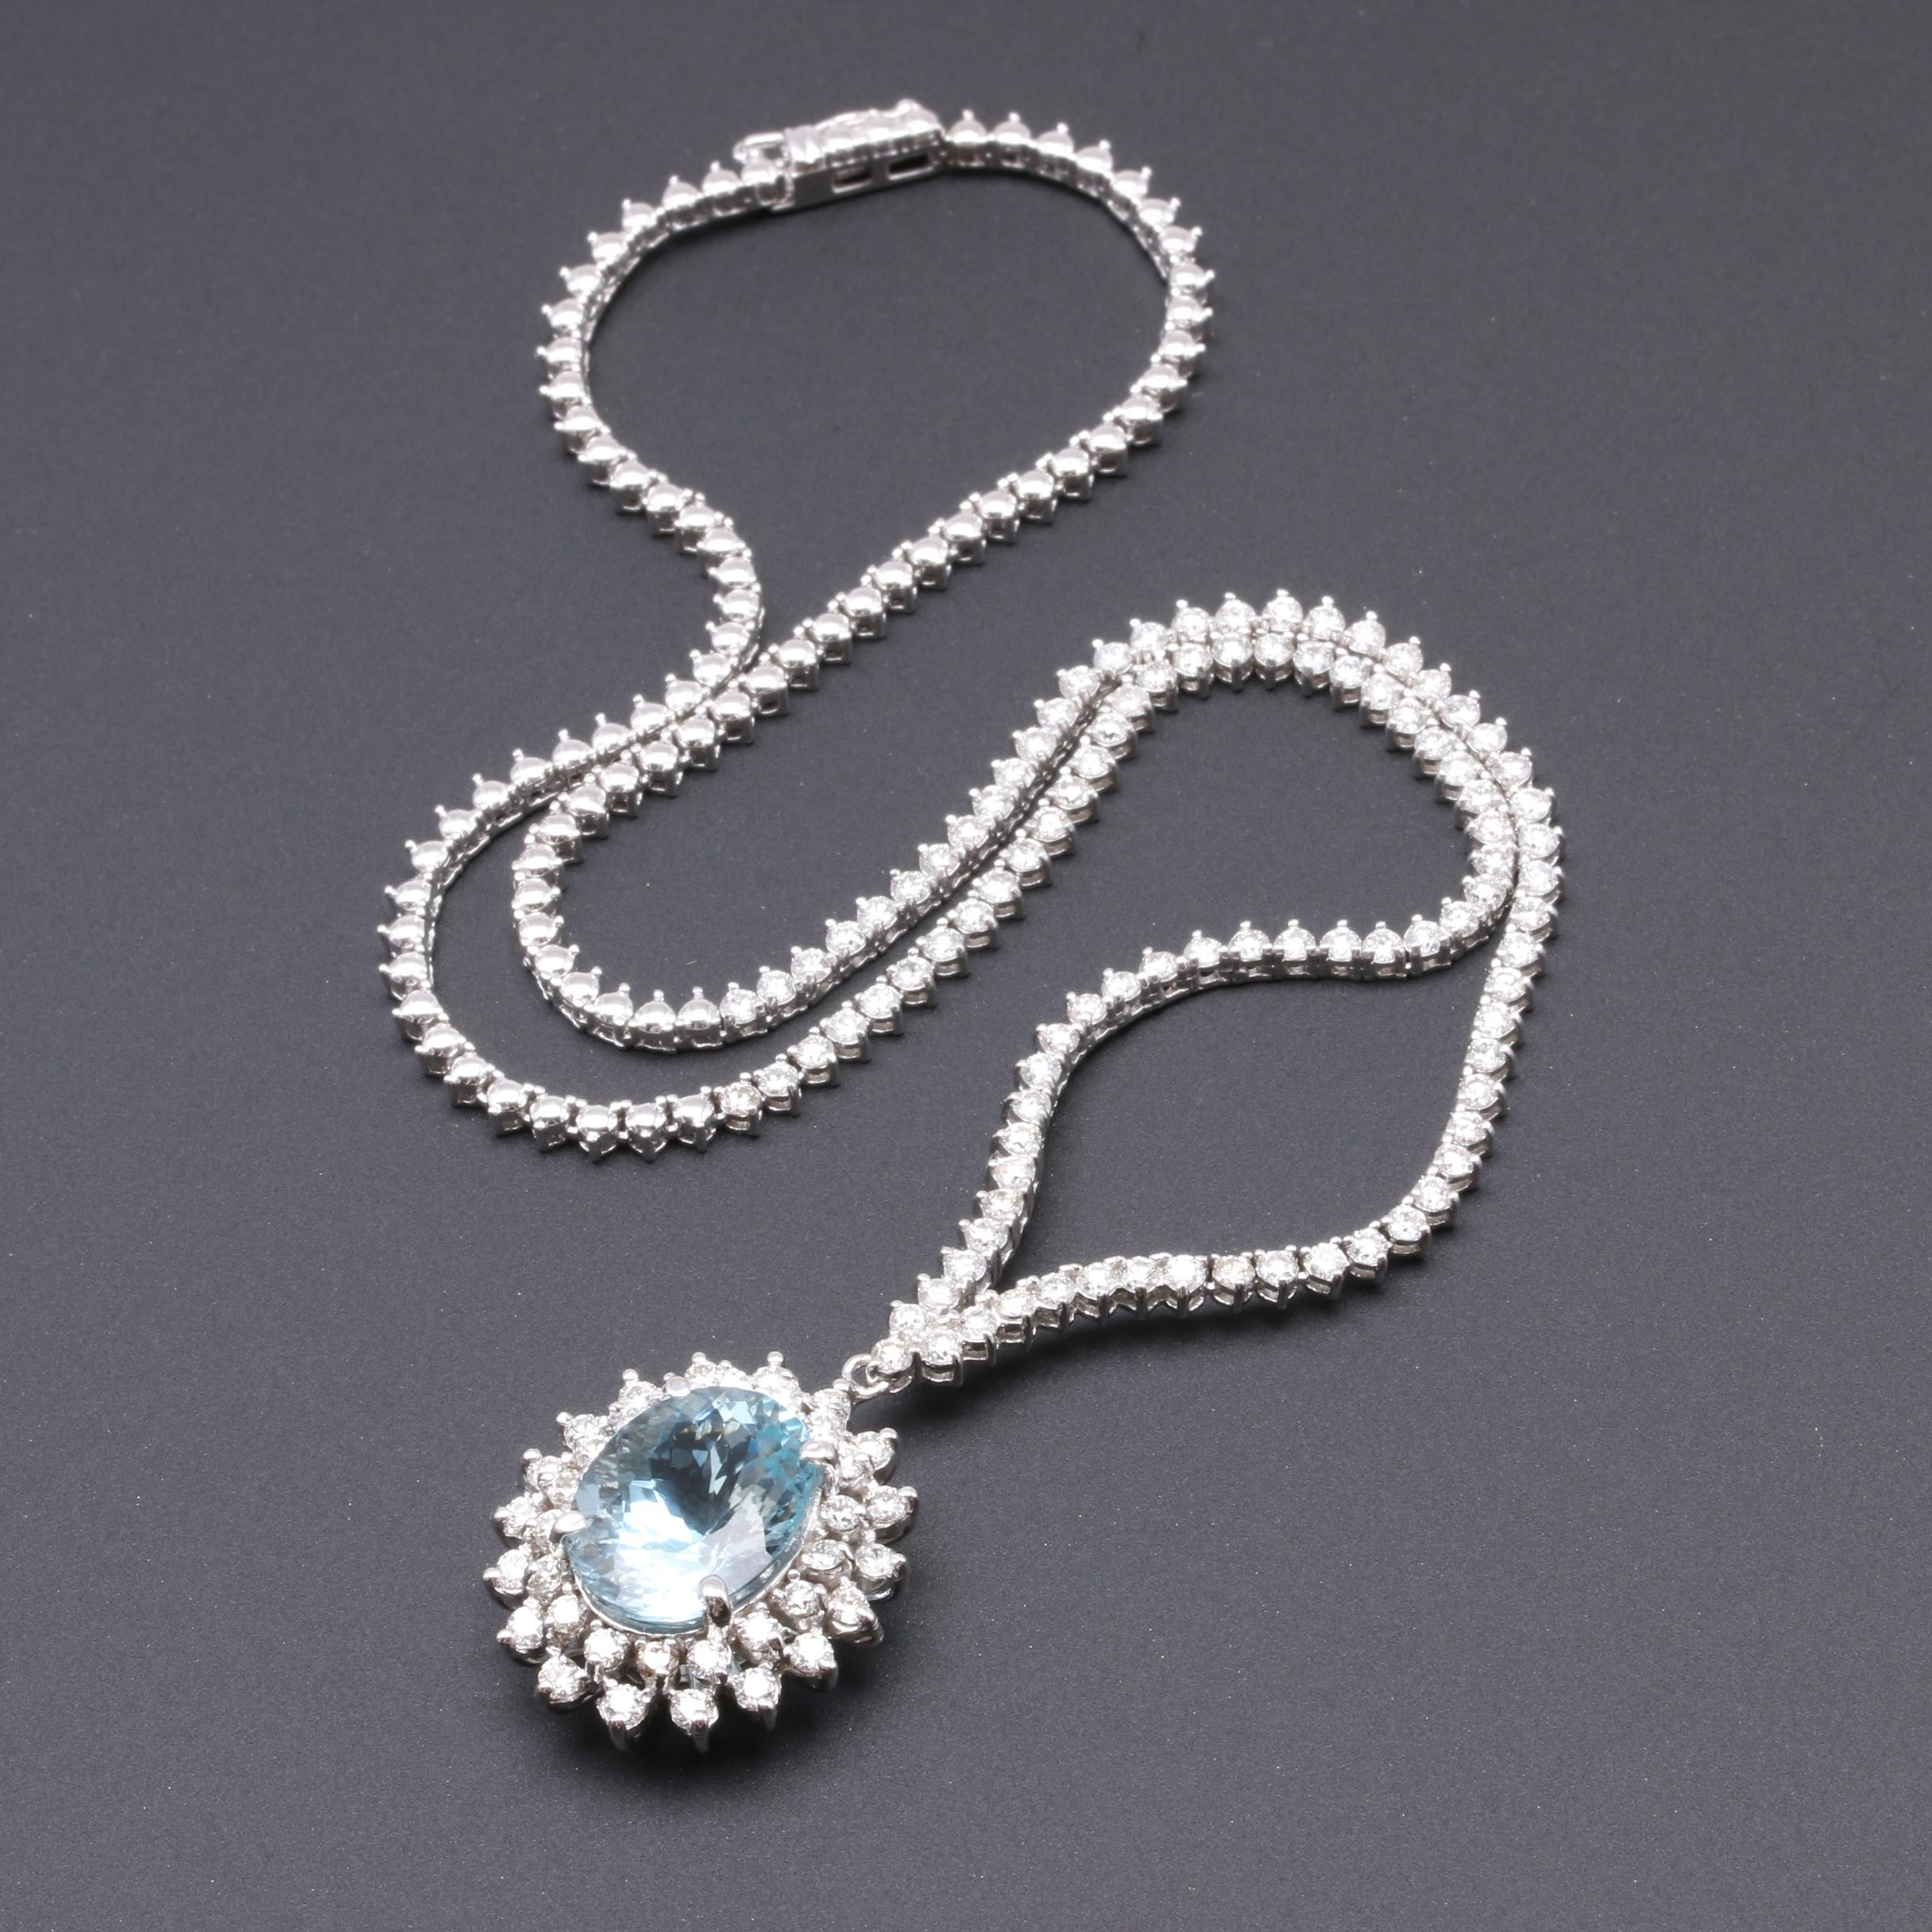 14K and 18K White Gold 7.64 CT Aquamarine and 4.00 CTW Diamond Necklace